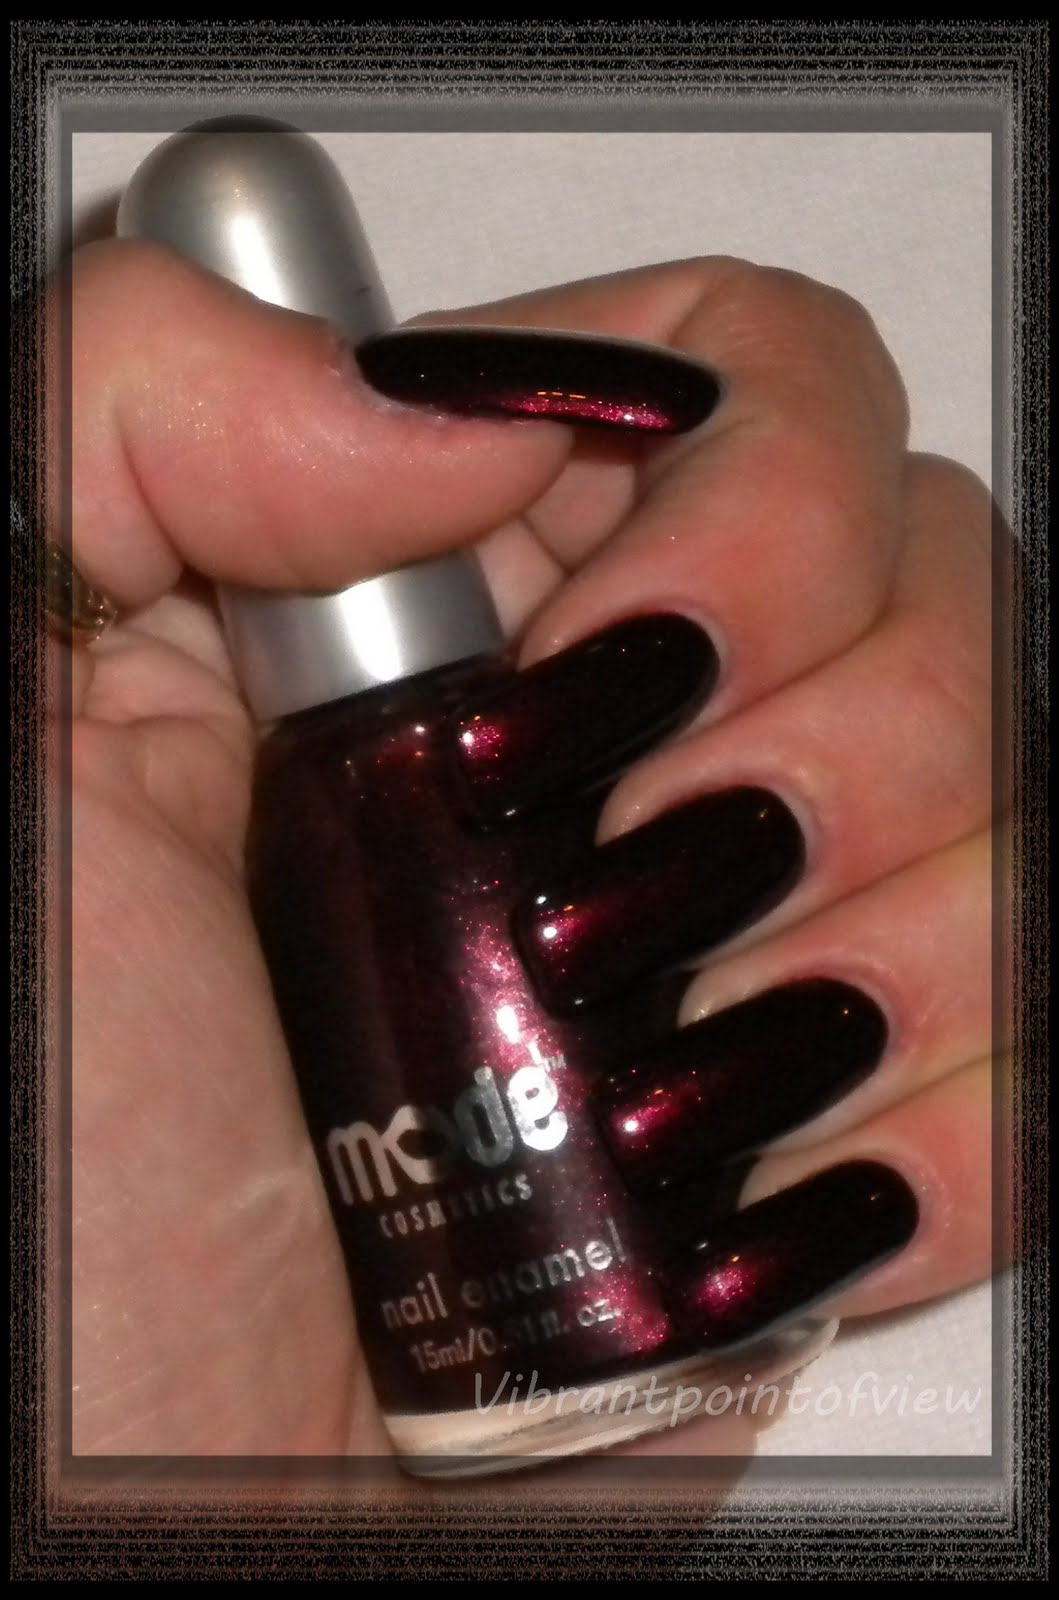 Vibrant Point Of View: Spotlight On: Mode Cosmetics #10604 Juicy Plum